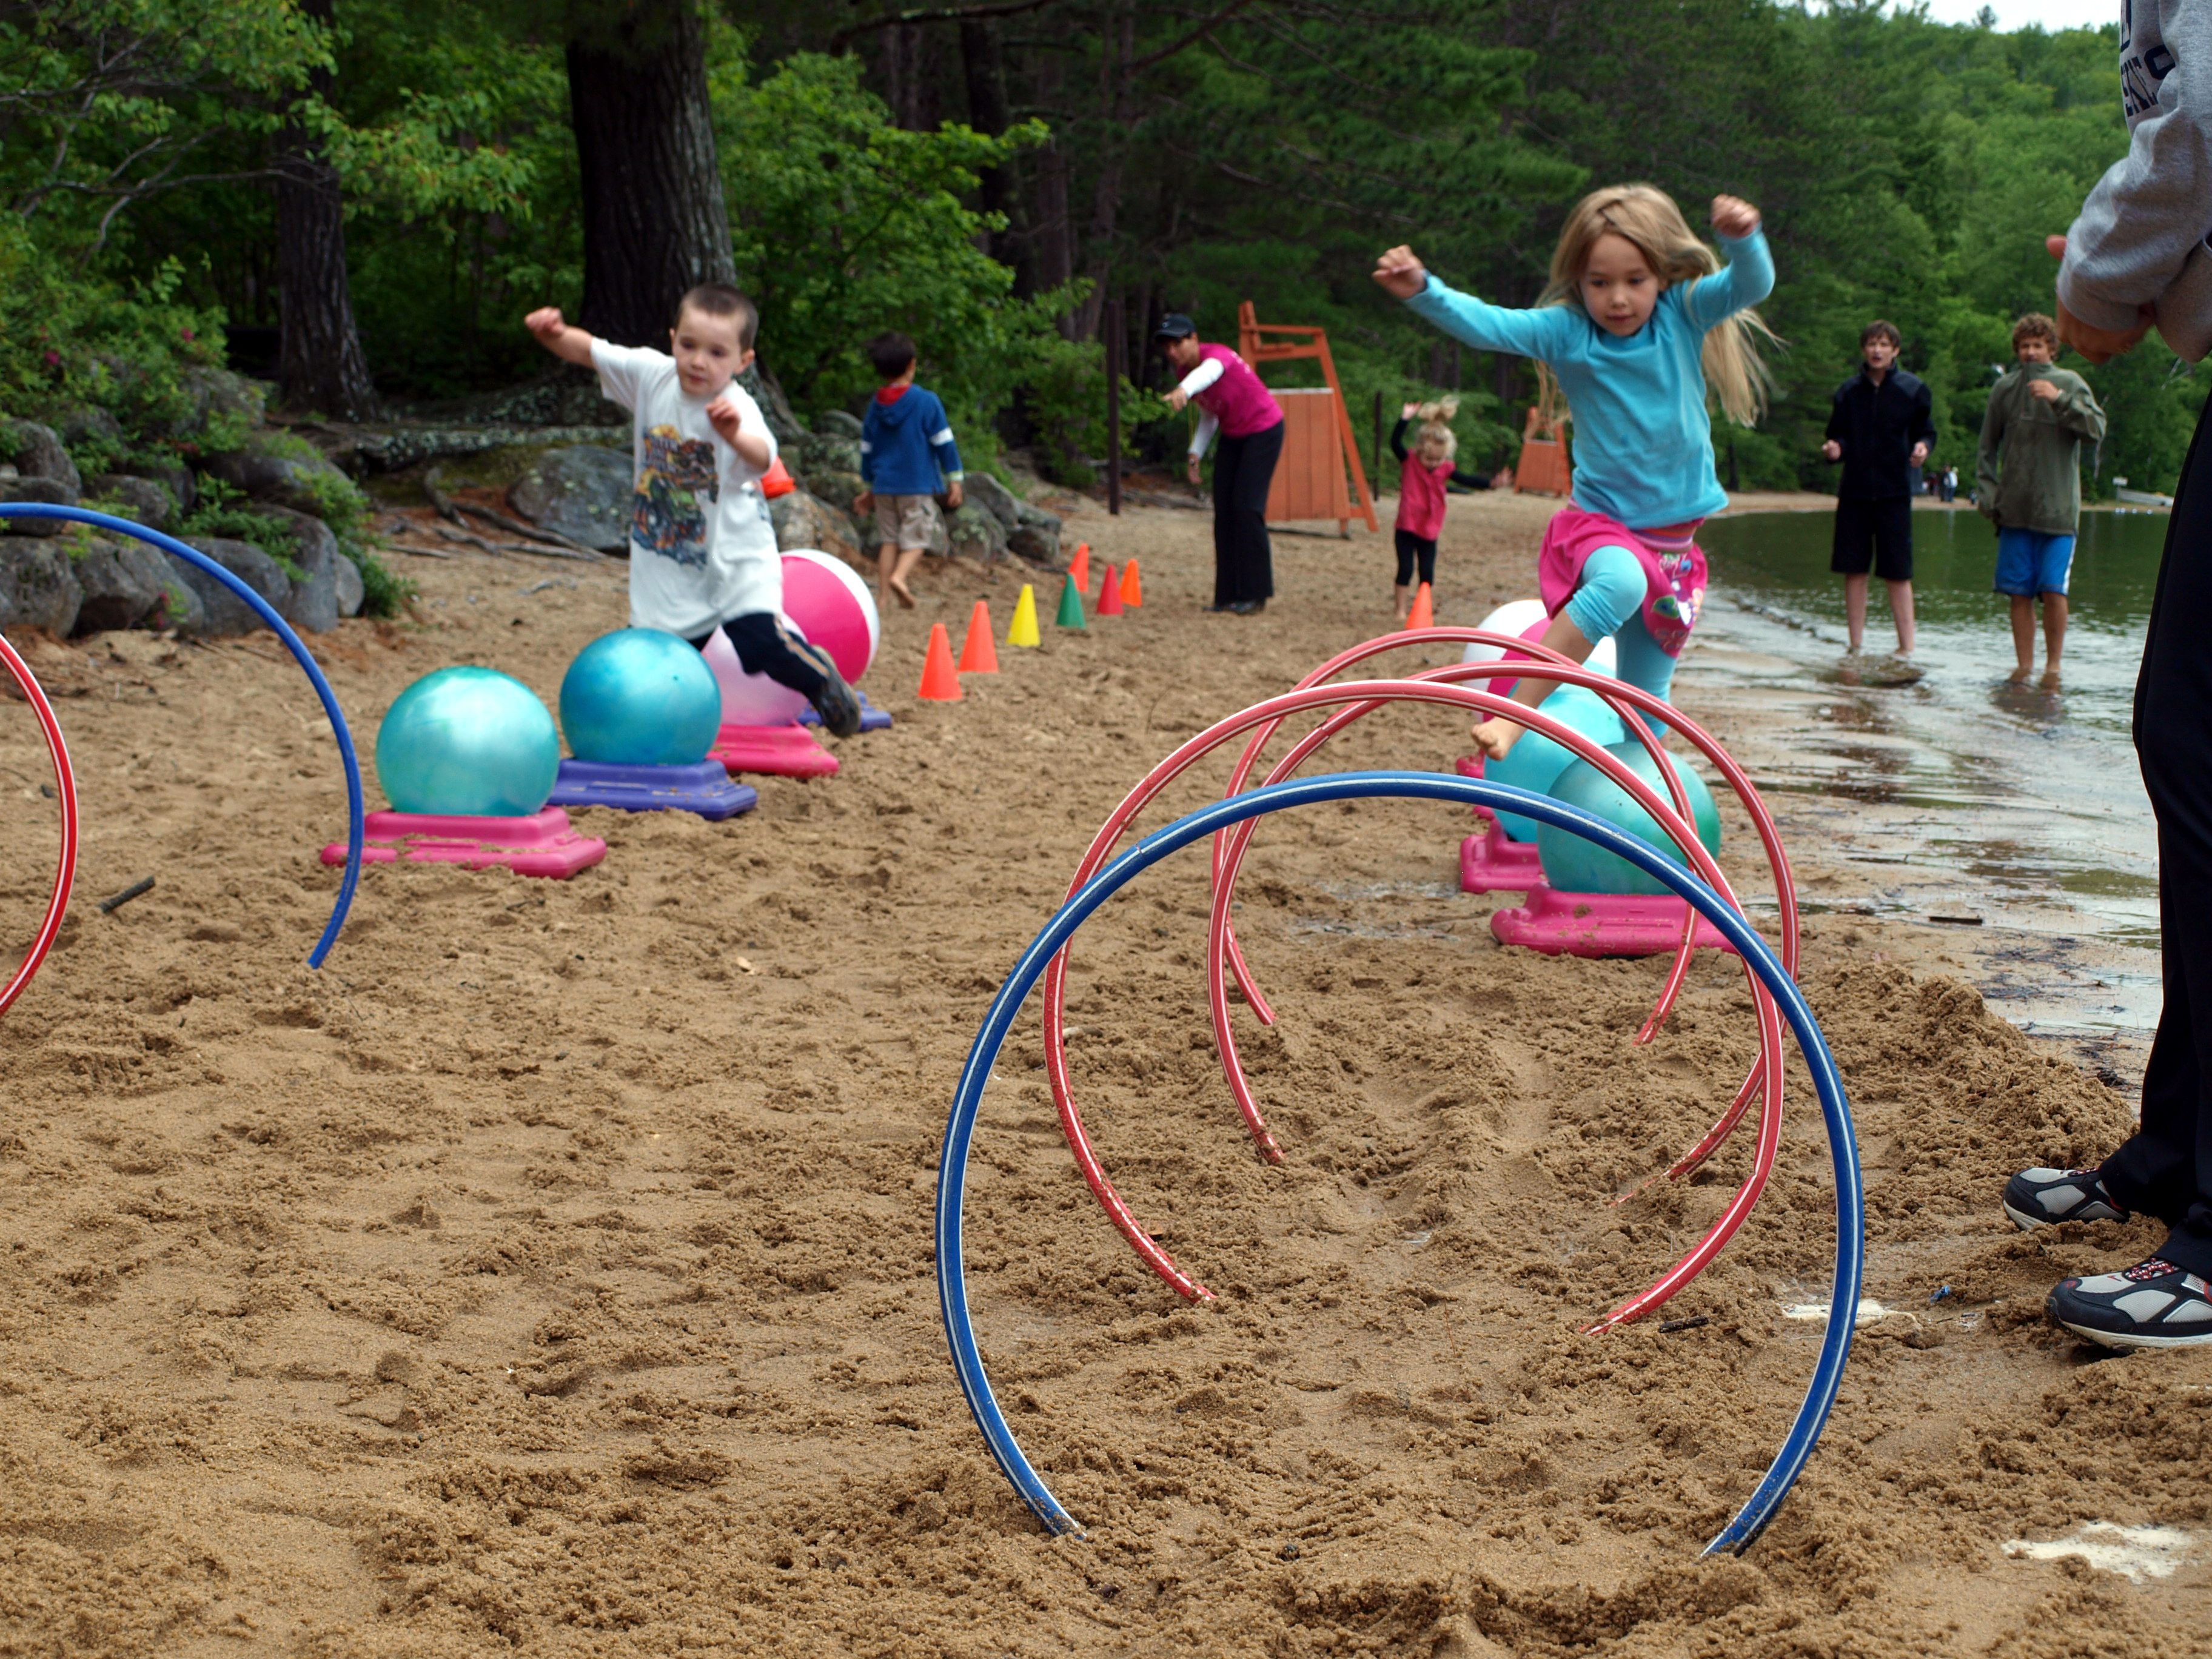 Ballspiele Draußen Lake Game For Kids Create An Obstacle Course Using Hula